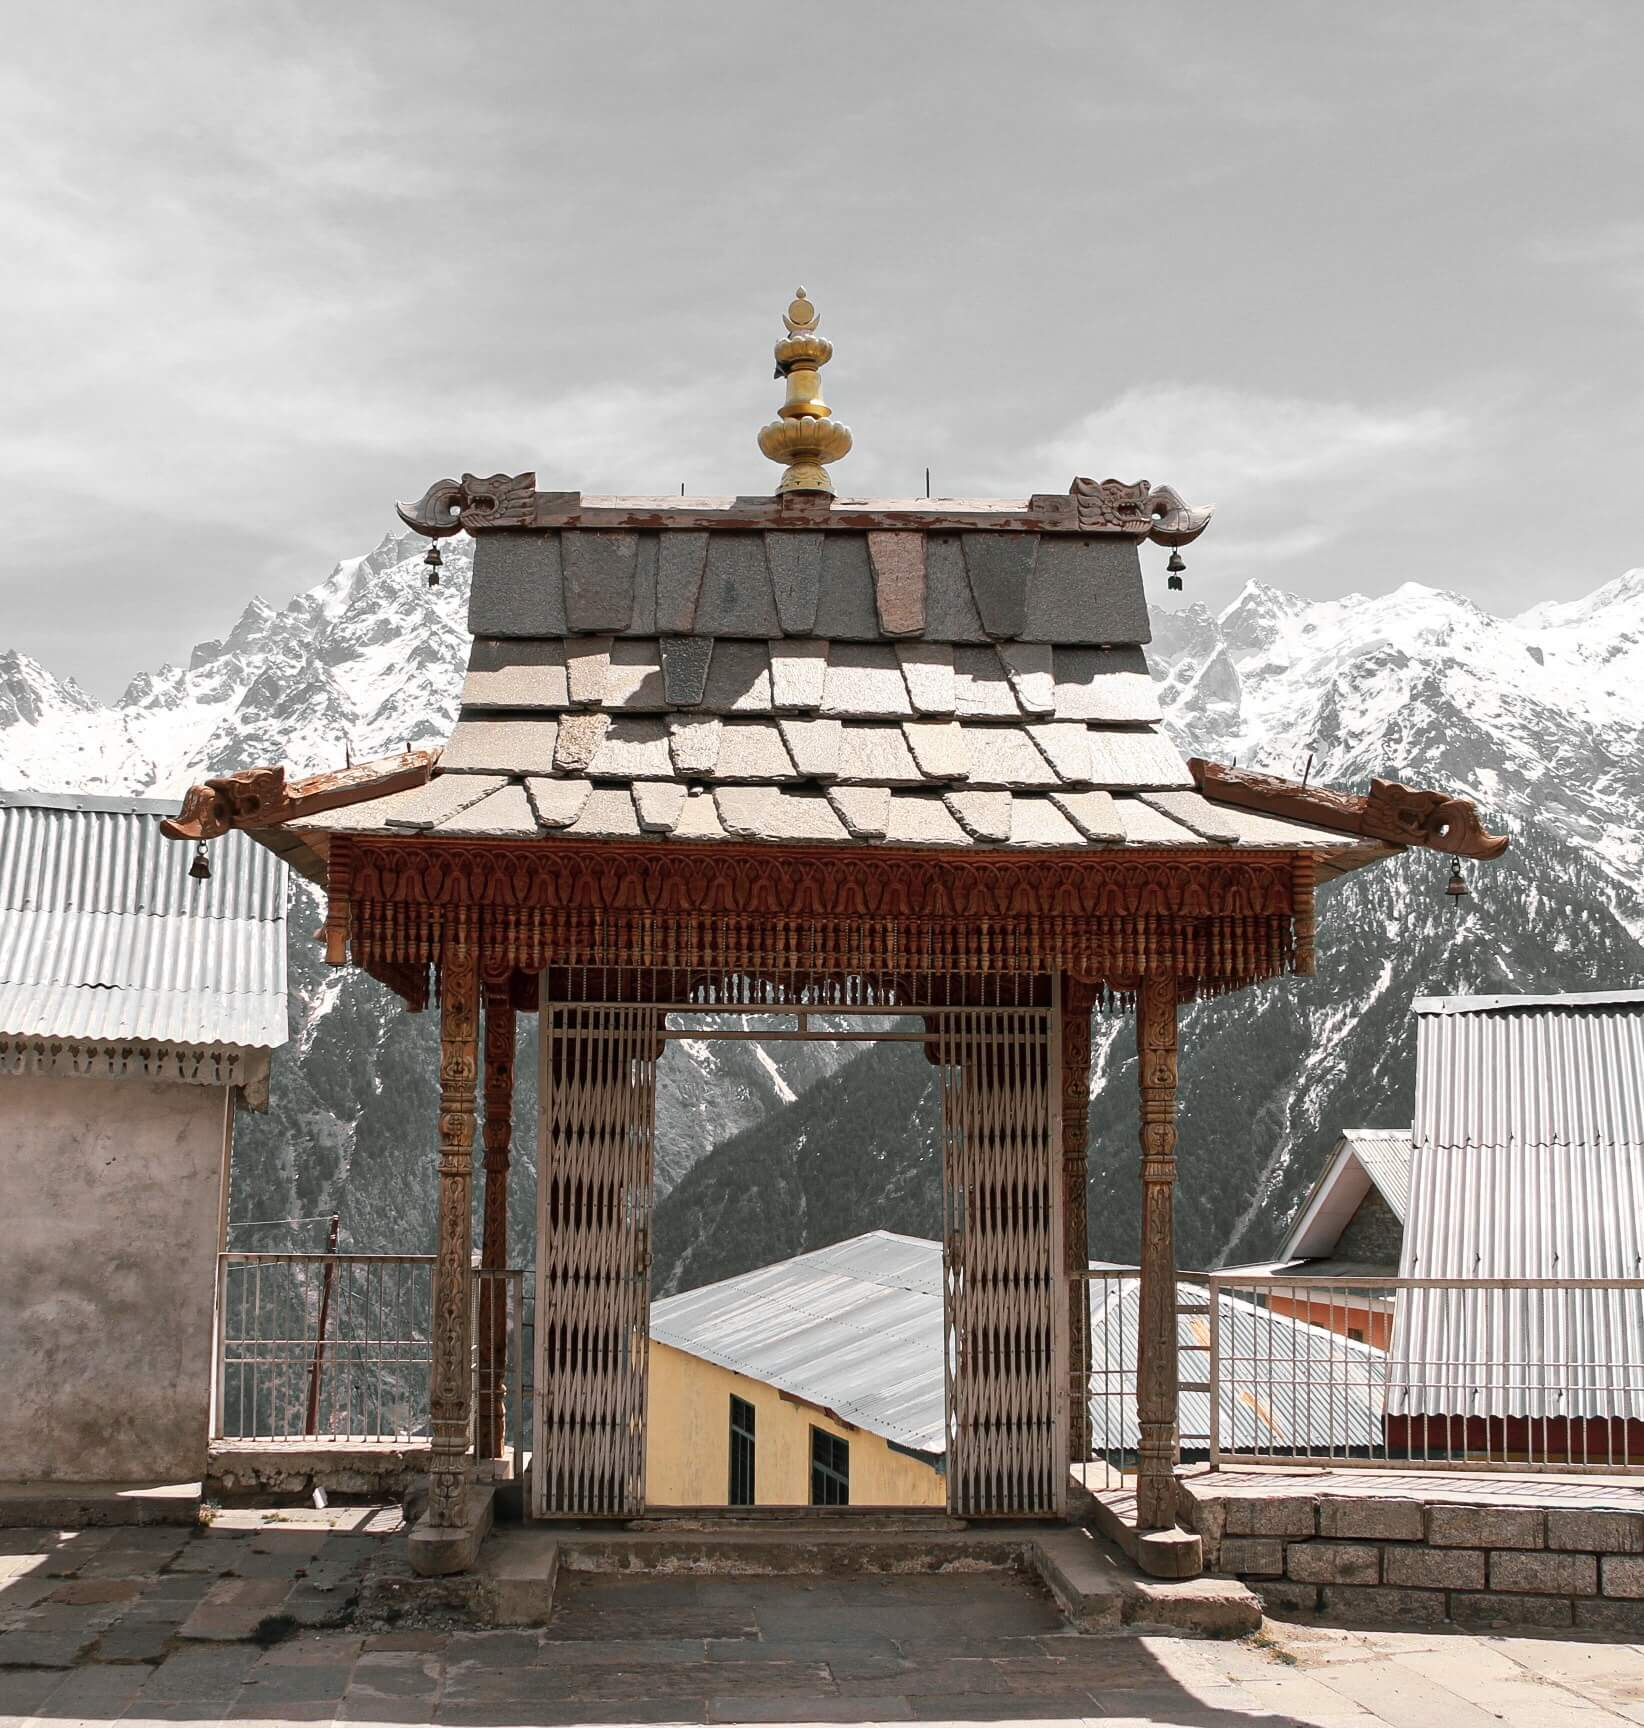 Kalpa Travel Photo Blog - This is from inside temple